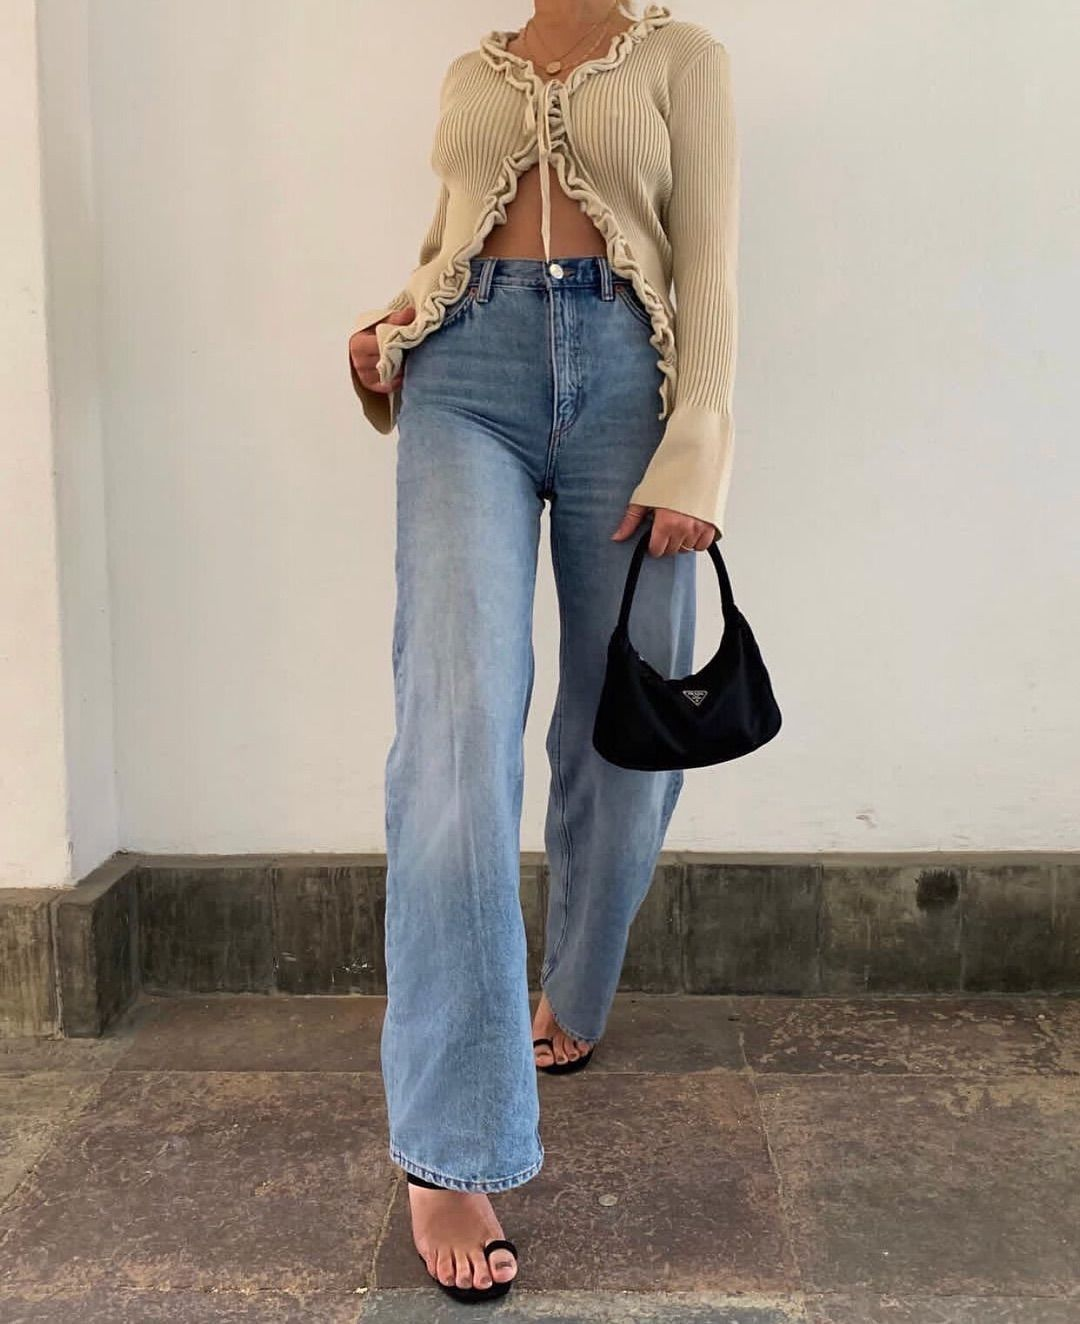 Aesthetic Fashion Clothes Outfit Inspo 90s Vintage Fashion Clothes Cute Outfits